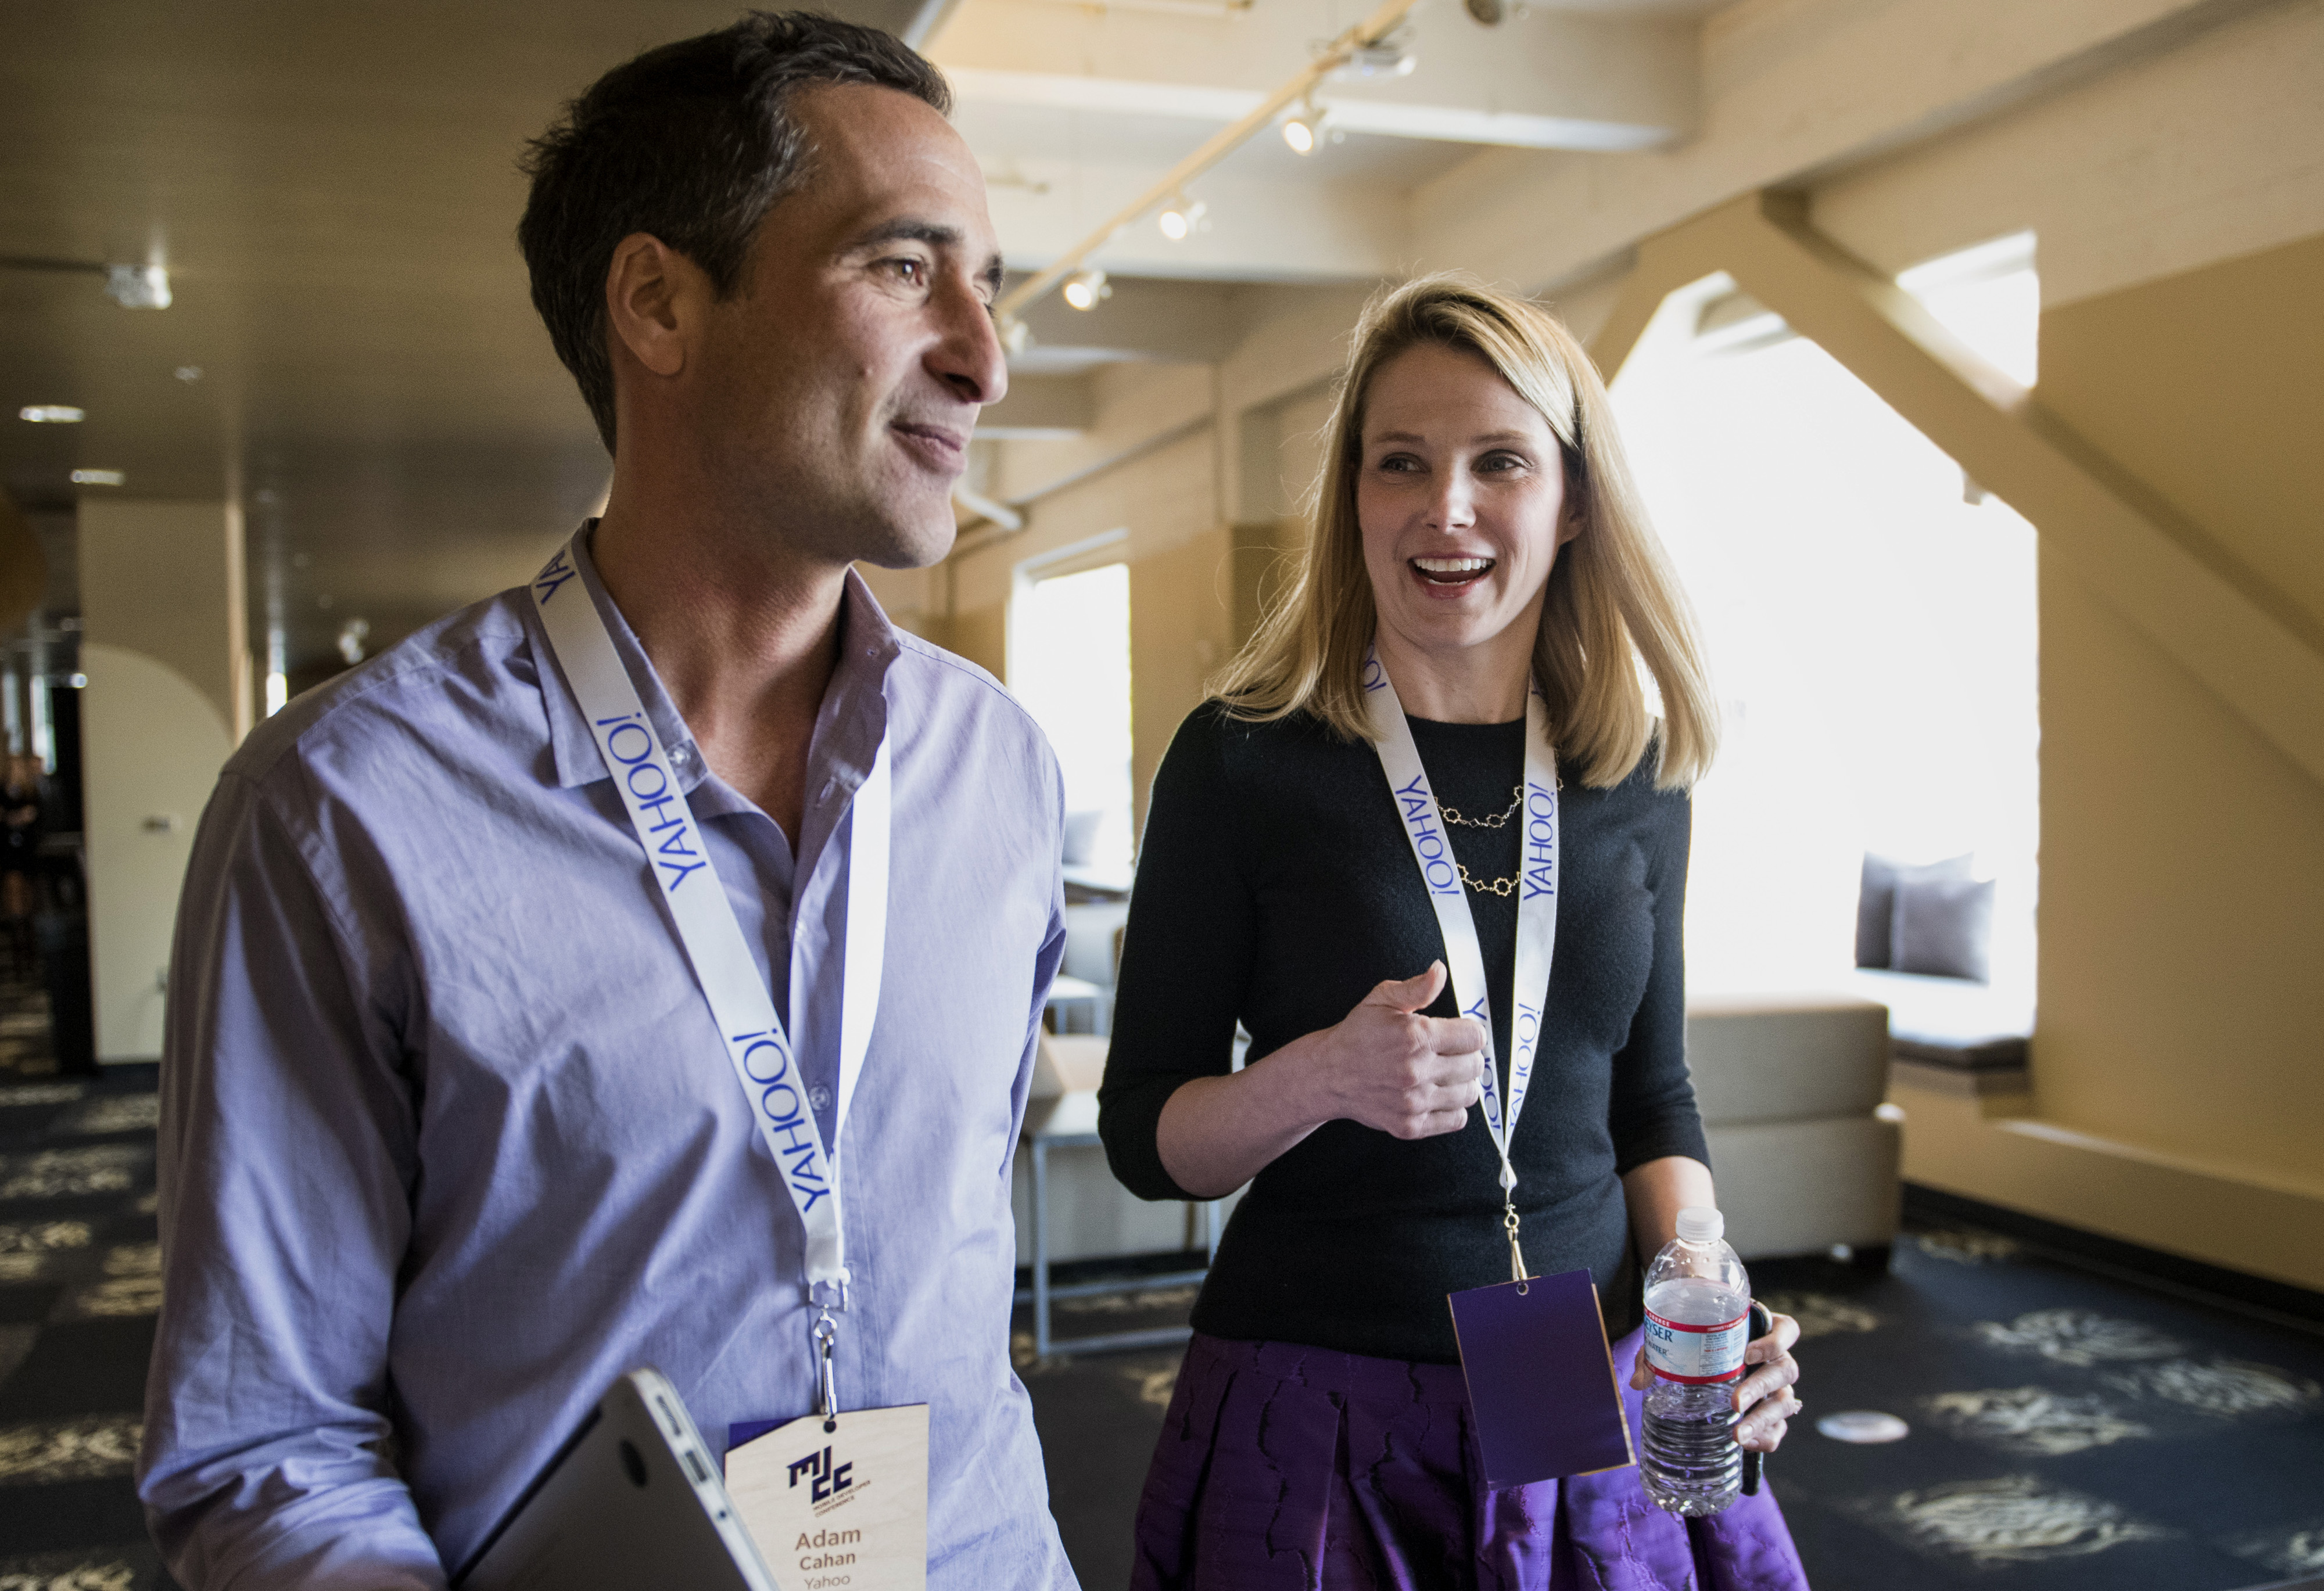 Marissa Mayer, president and chief executive officer at Yahoo! Inc., right, speaks with Adam Cahan, senior vice president of Mobile and Emerging Products, at Yahoo! as they leave a press conference at the Yahoo! Inc. Mobile Developer Conference in San Francisco, California, U.S., on Thursday, Feb. 19, 2015. The conference will unveil a new suite of services designed to help mobile developers better understand users, while improving, growing and monetizing their apps. Photographer: David Paul Morris/Bloomberg *** Local Caption *** Marissa Mayer;Adam Cahan